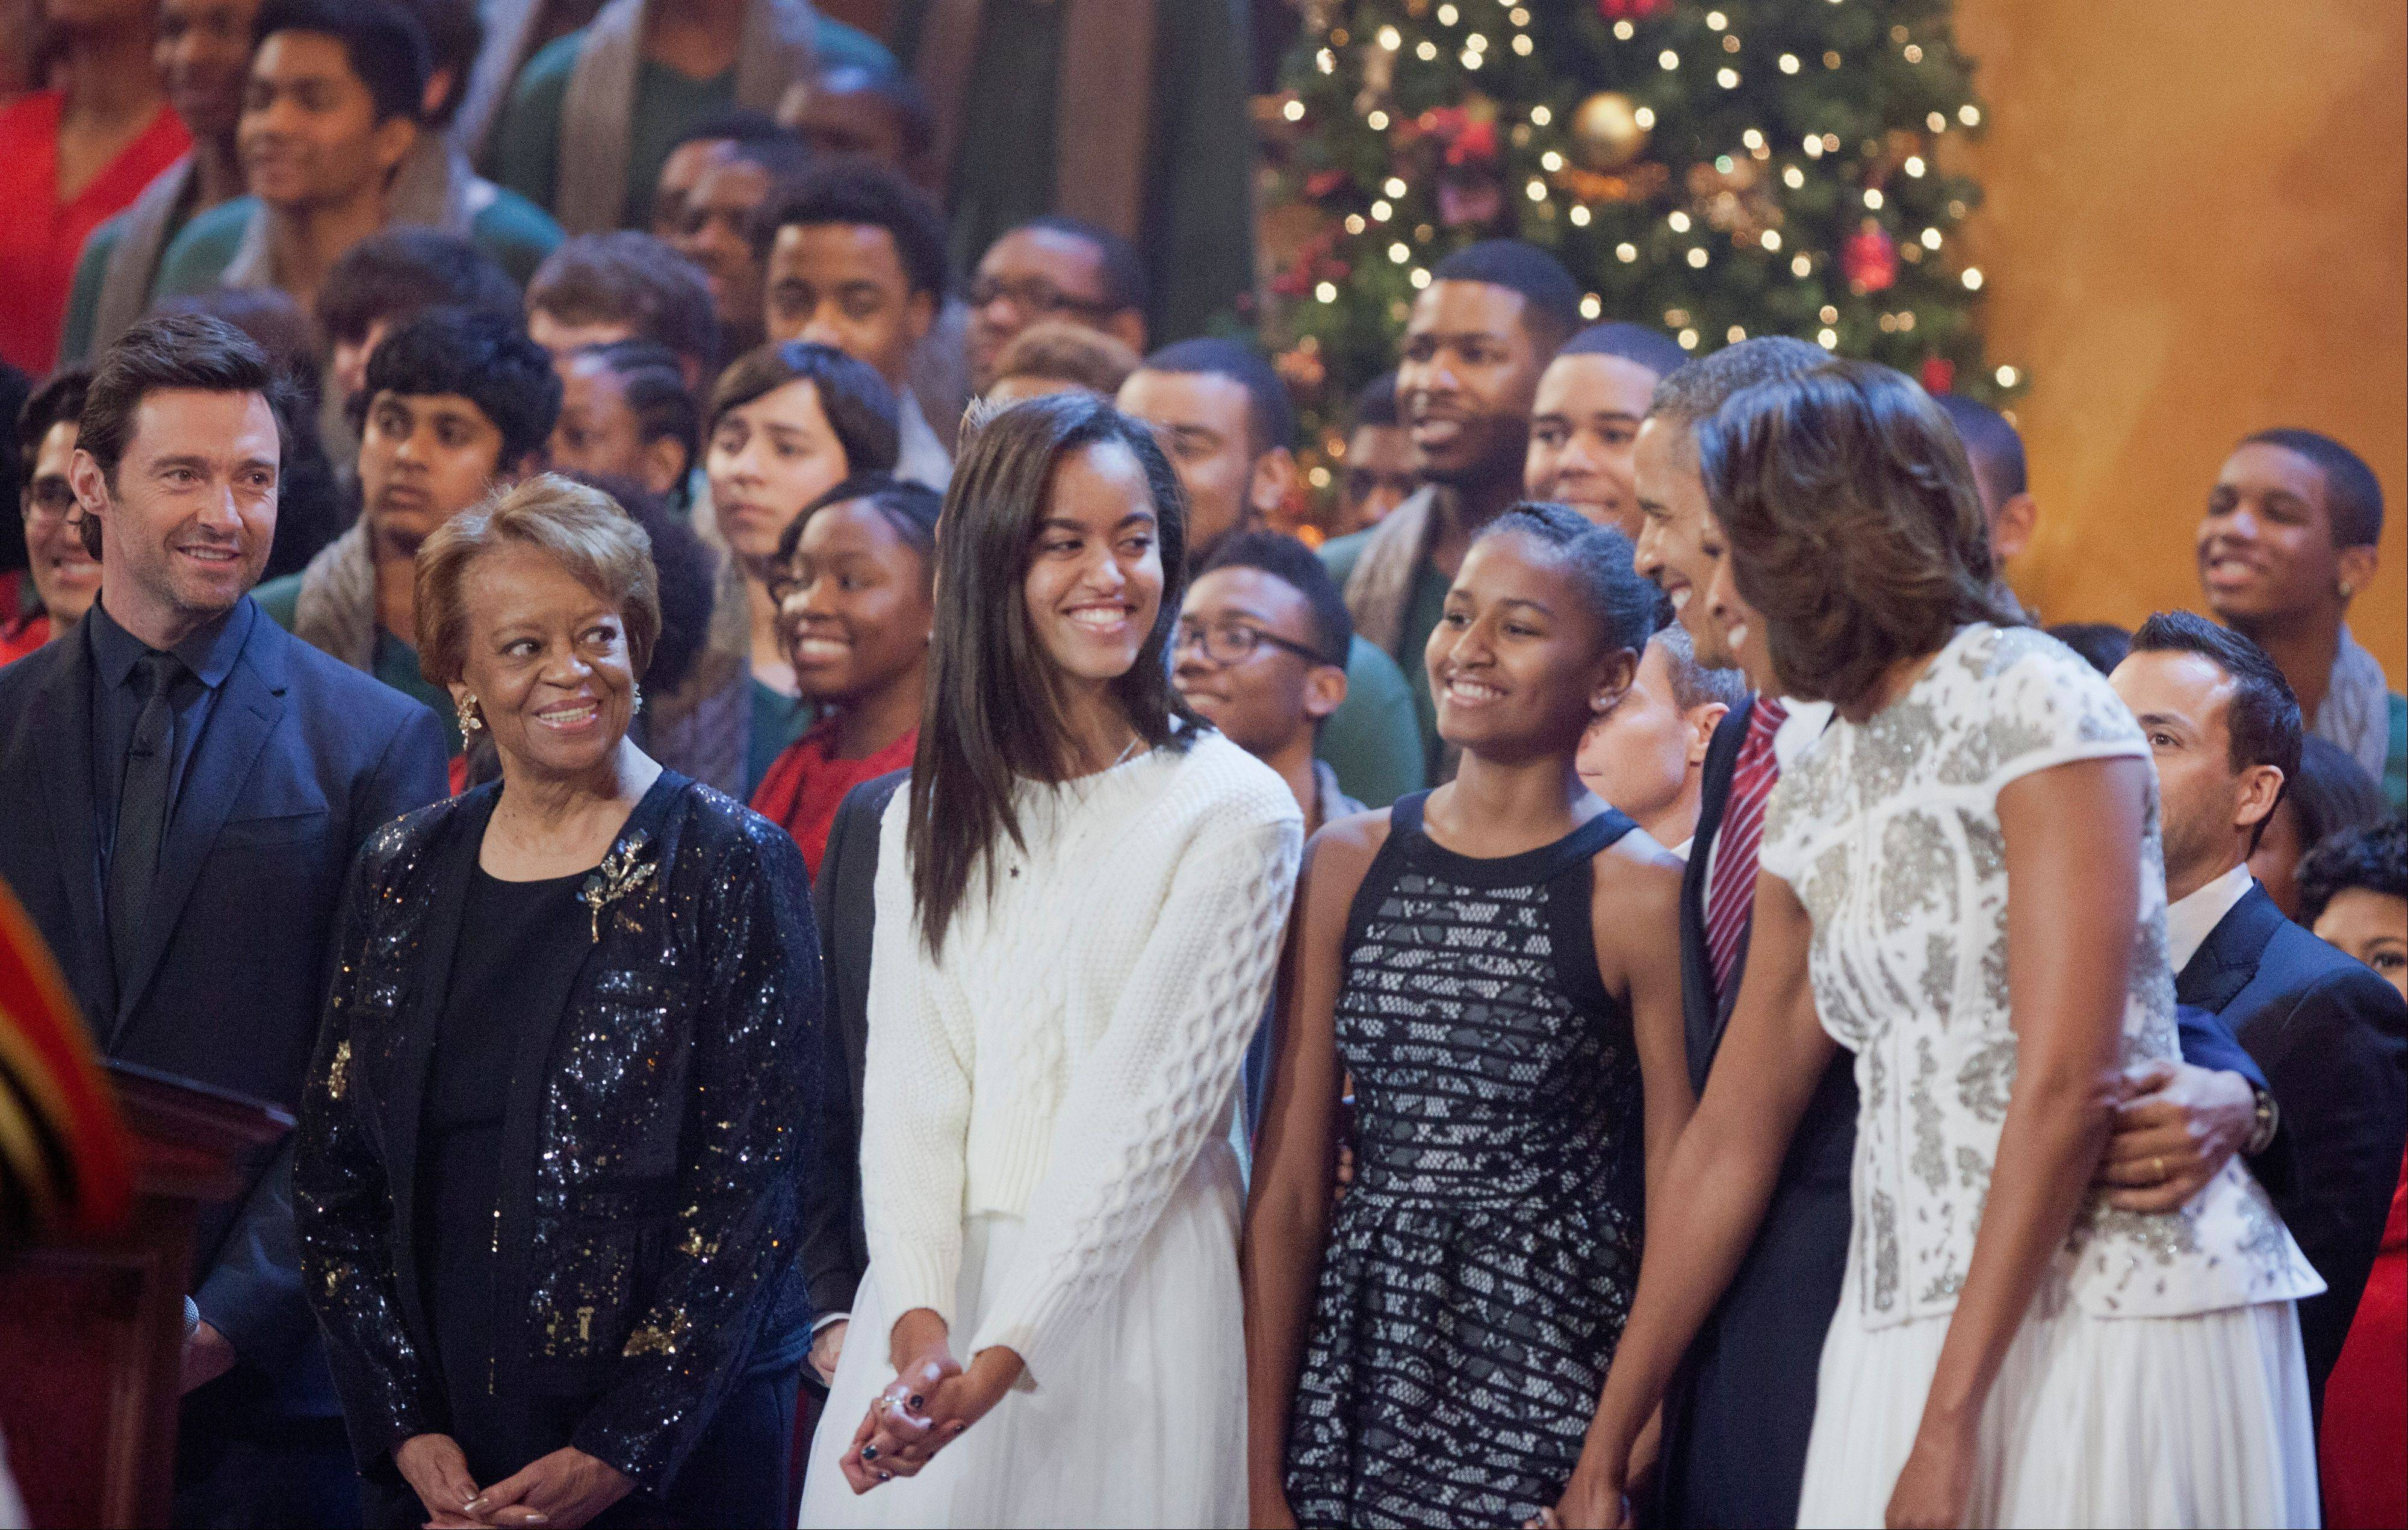 Host Hugh Jackman, left, and the first family, from second left, Marian Robinson, Malia Obama, Sasha Obama, President Barack Obama and first lady Michelle Obama, join performers on the stage singing a Christmas carol during the annual 2013 Christmas in Washington presentation at the National Building Museum in Washington. It airs on TNT tonight.